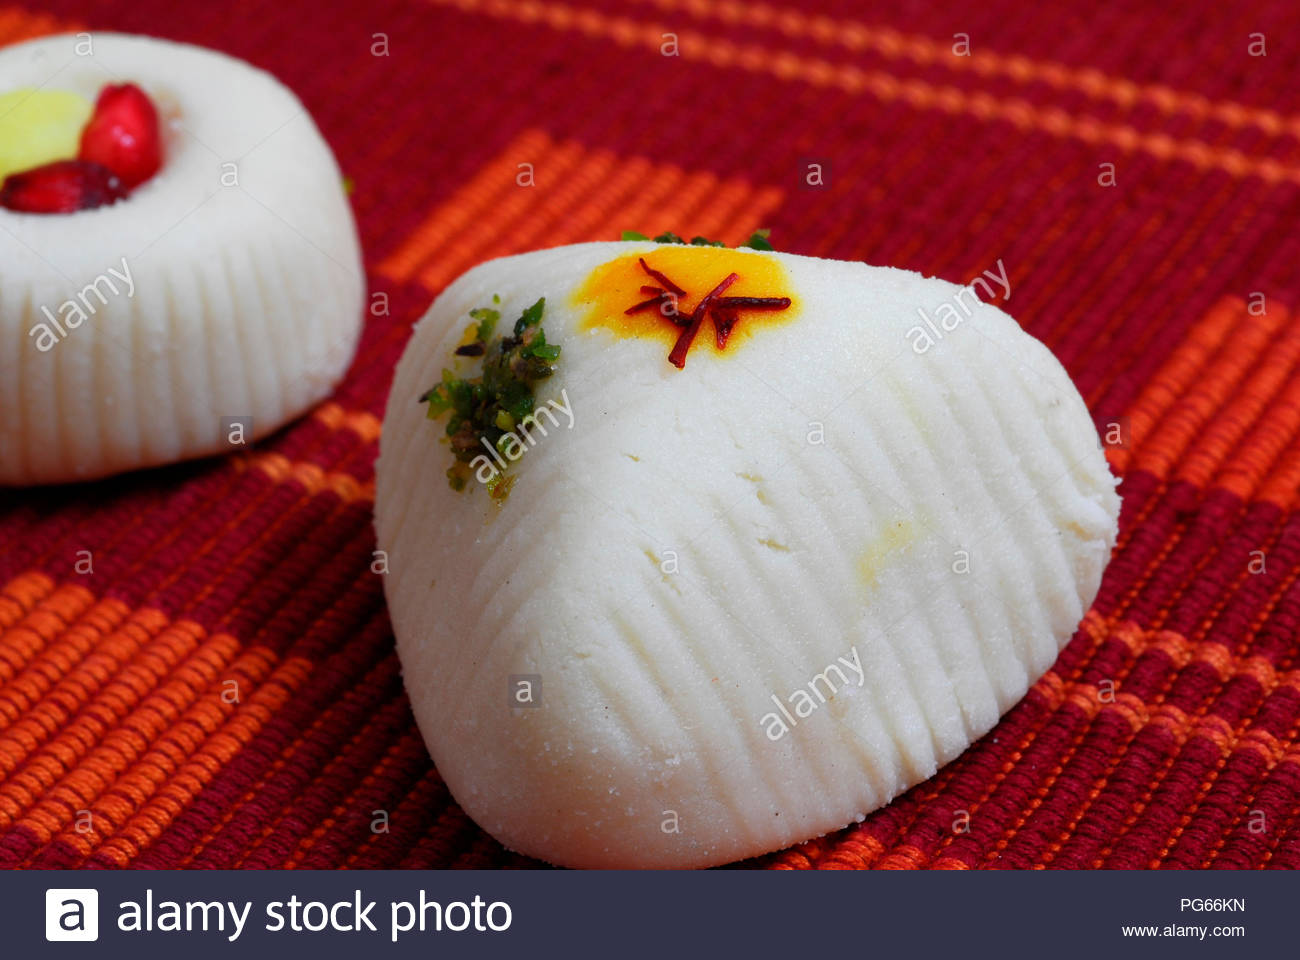 An isolated shot of White Indian Sweets Mithai decorated with saffron - Stock Image